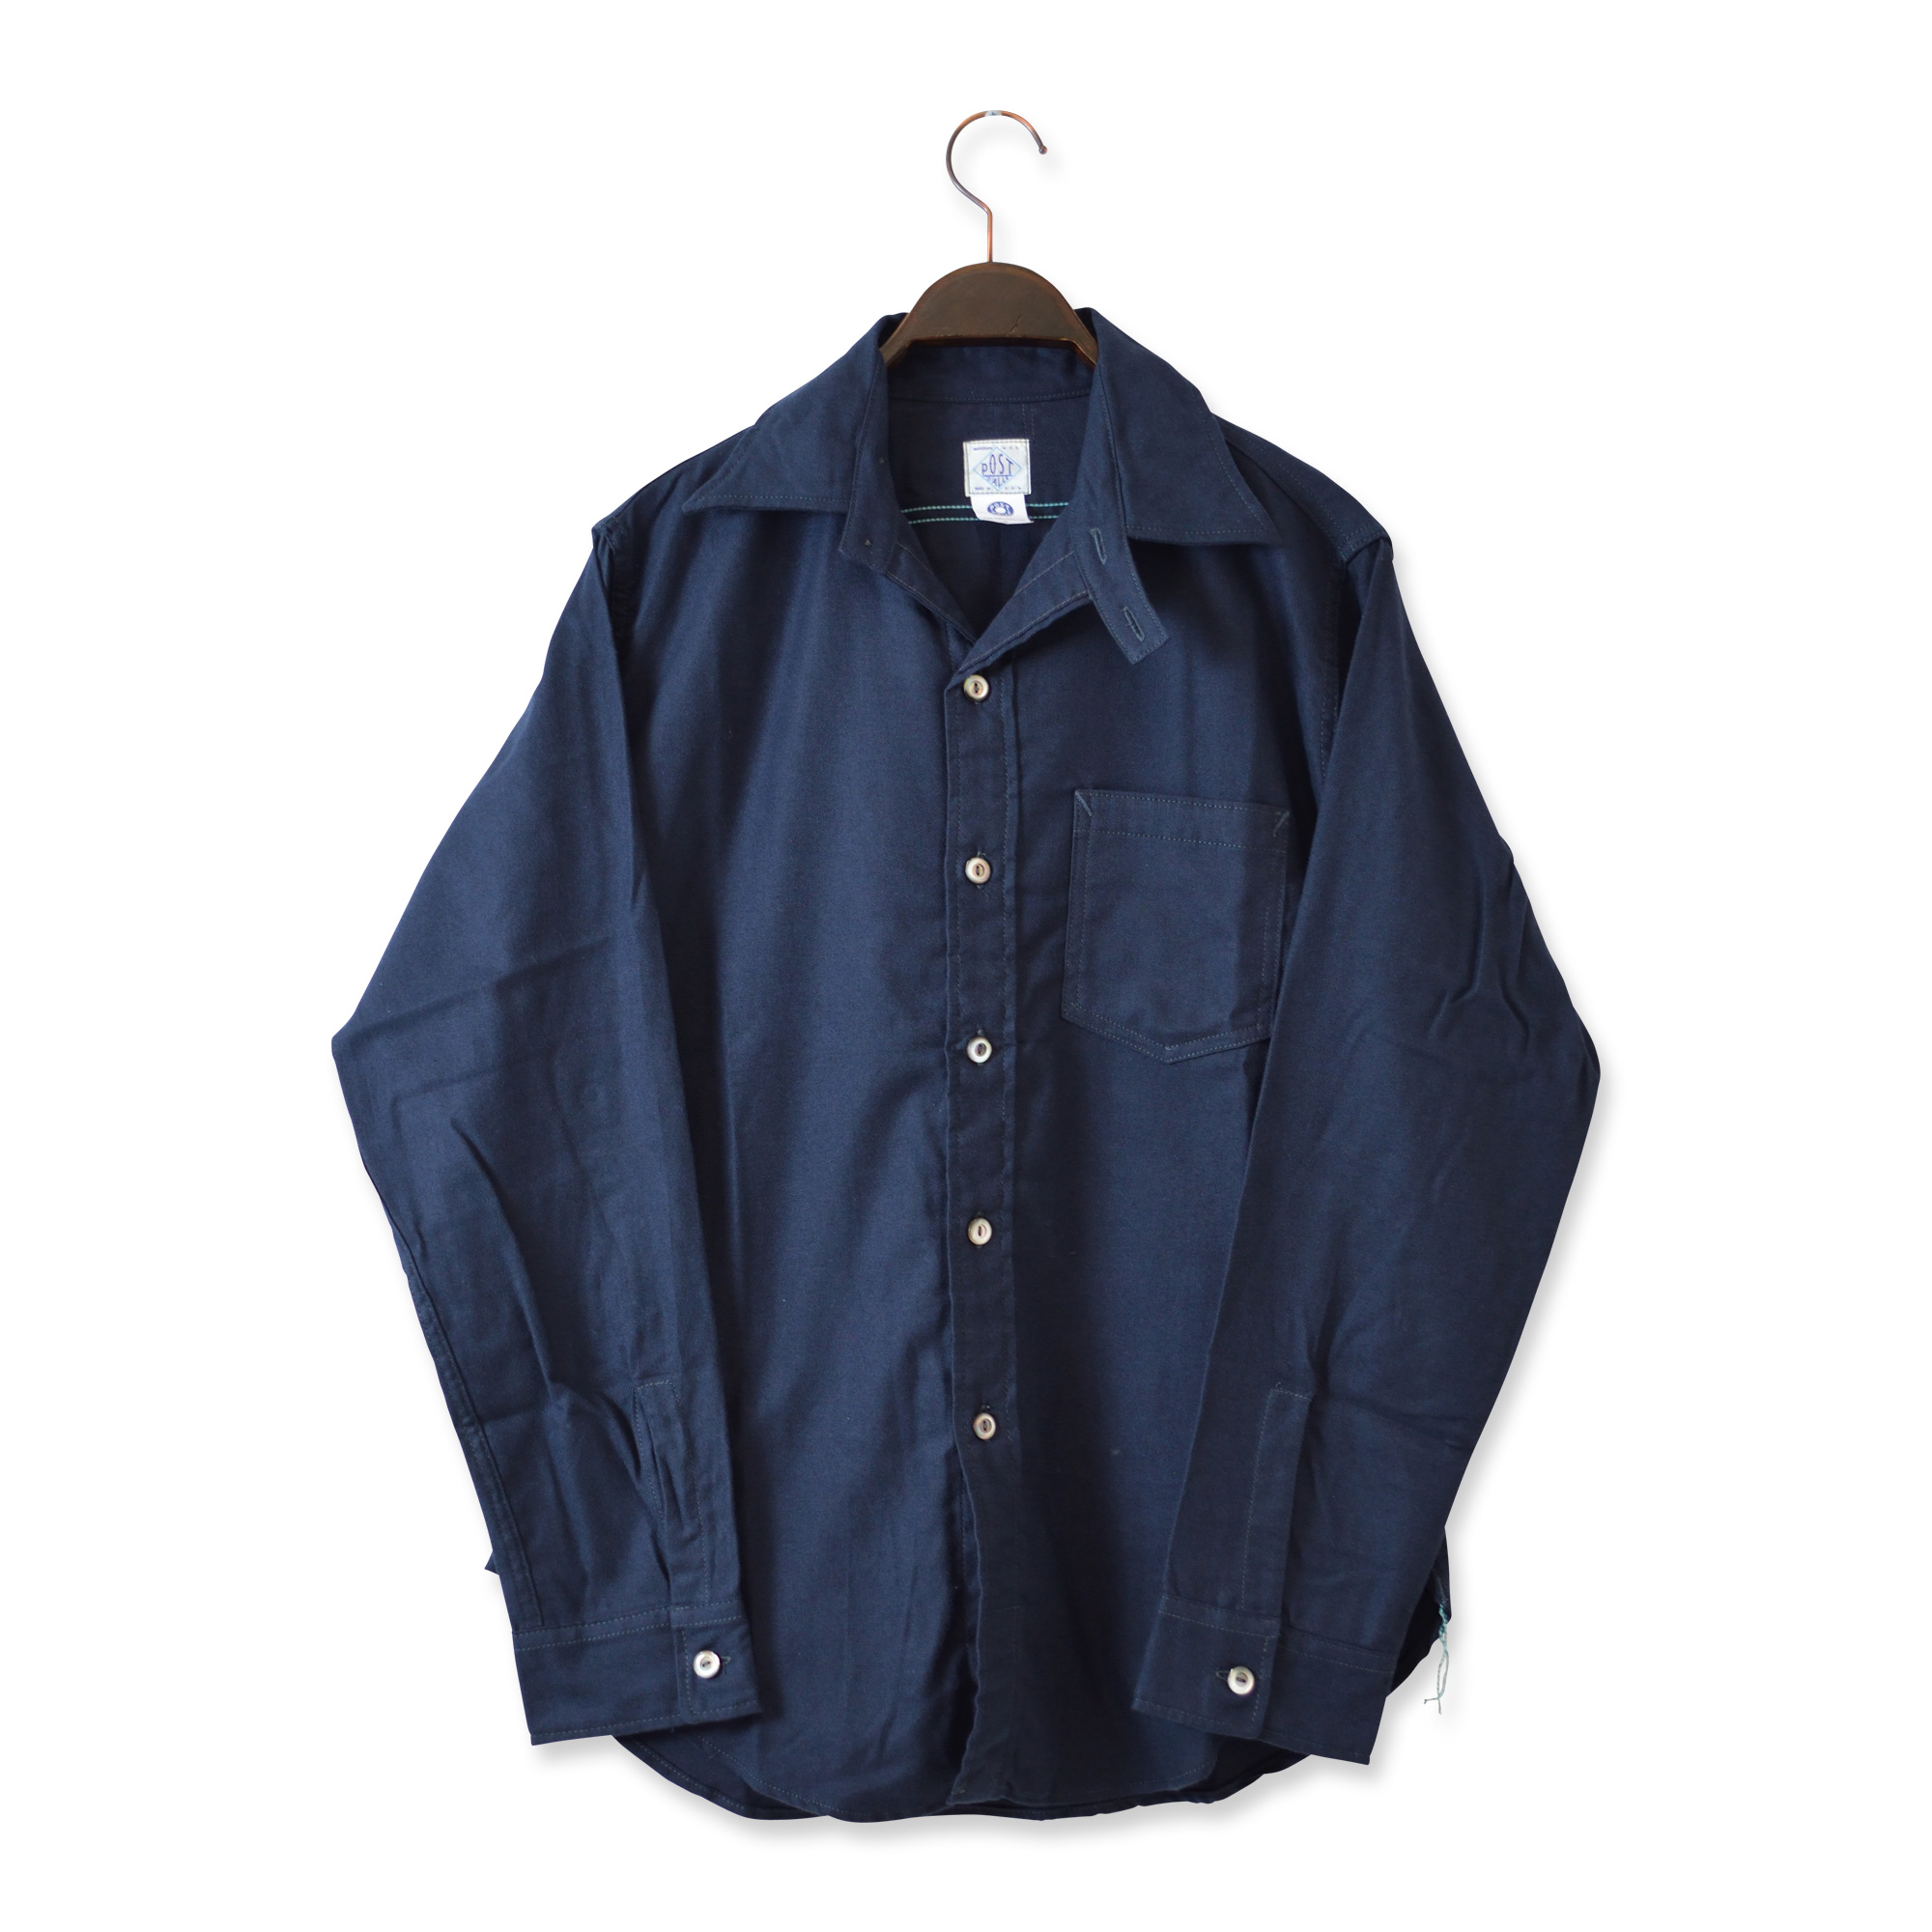 POST OVERALLS(ポストオーバーオールズ)/2212-CT THE POST3-R COTTON FLANNEL